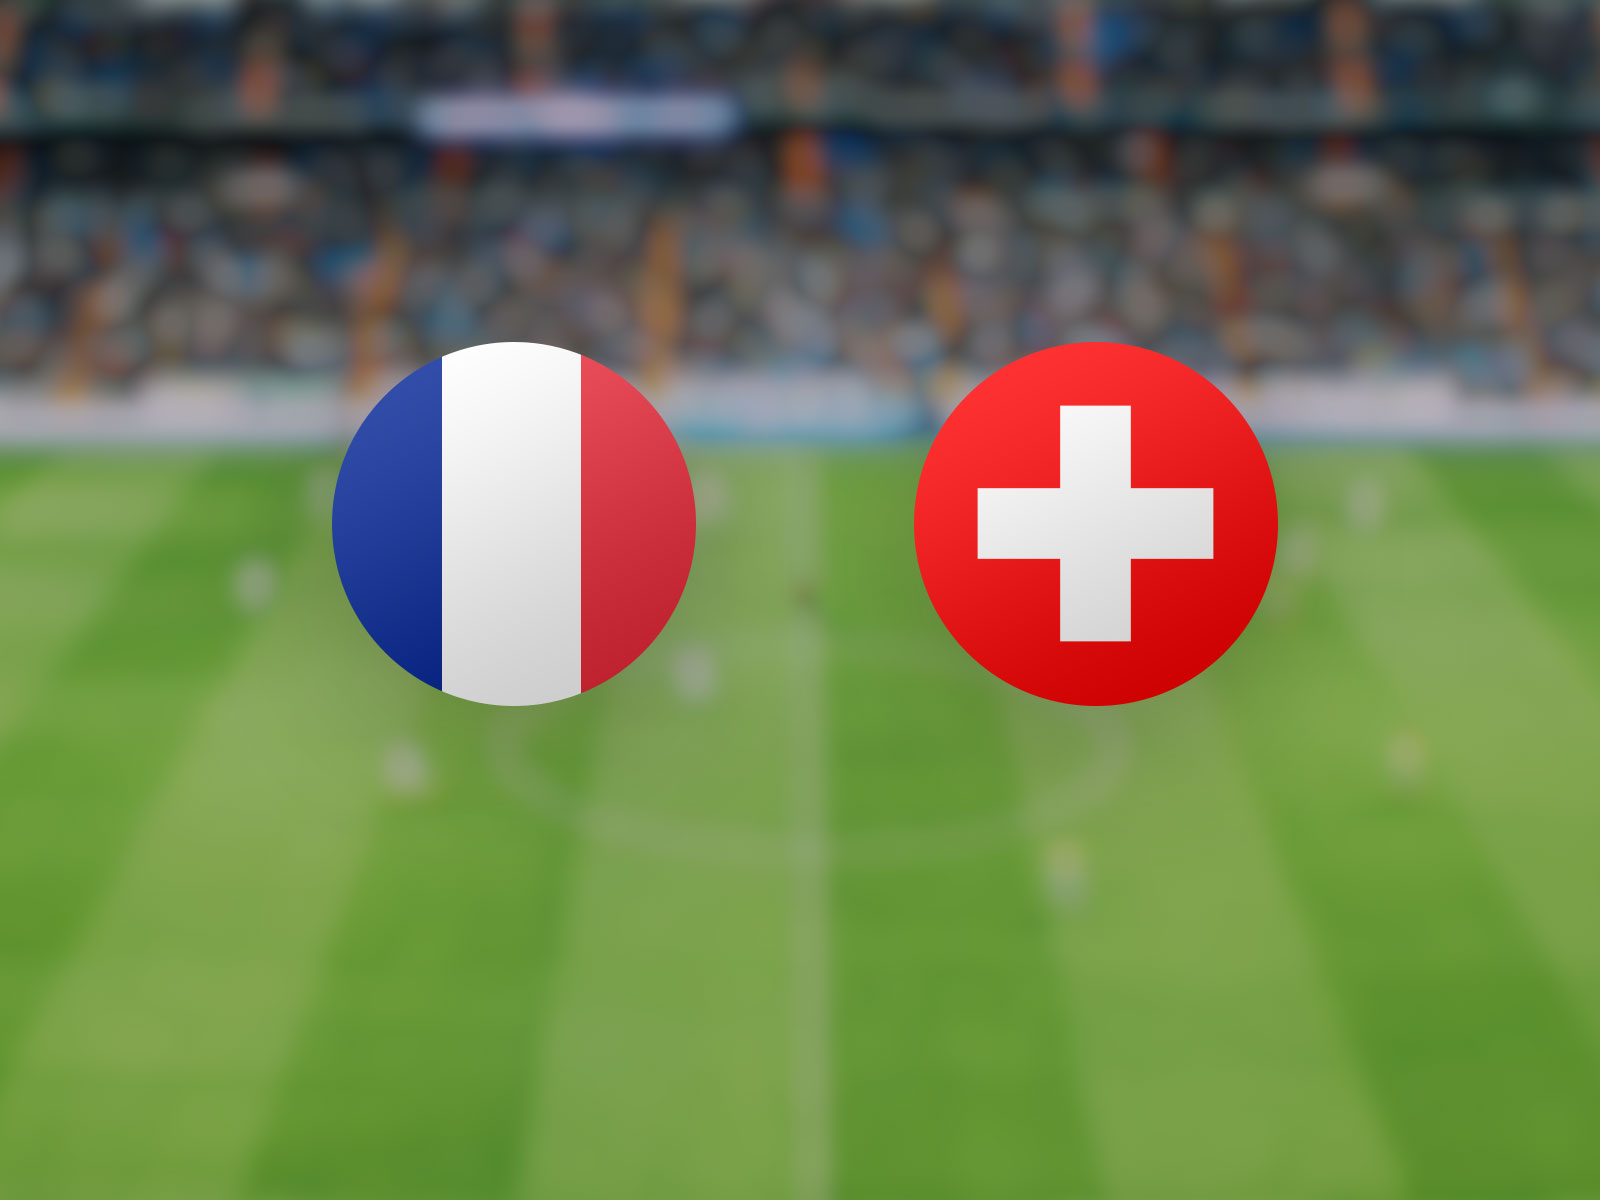 watch France vs Switzerland in Euro 2020 last-16 knockout rounds